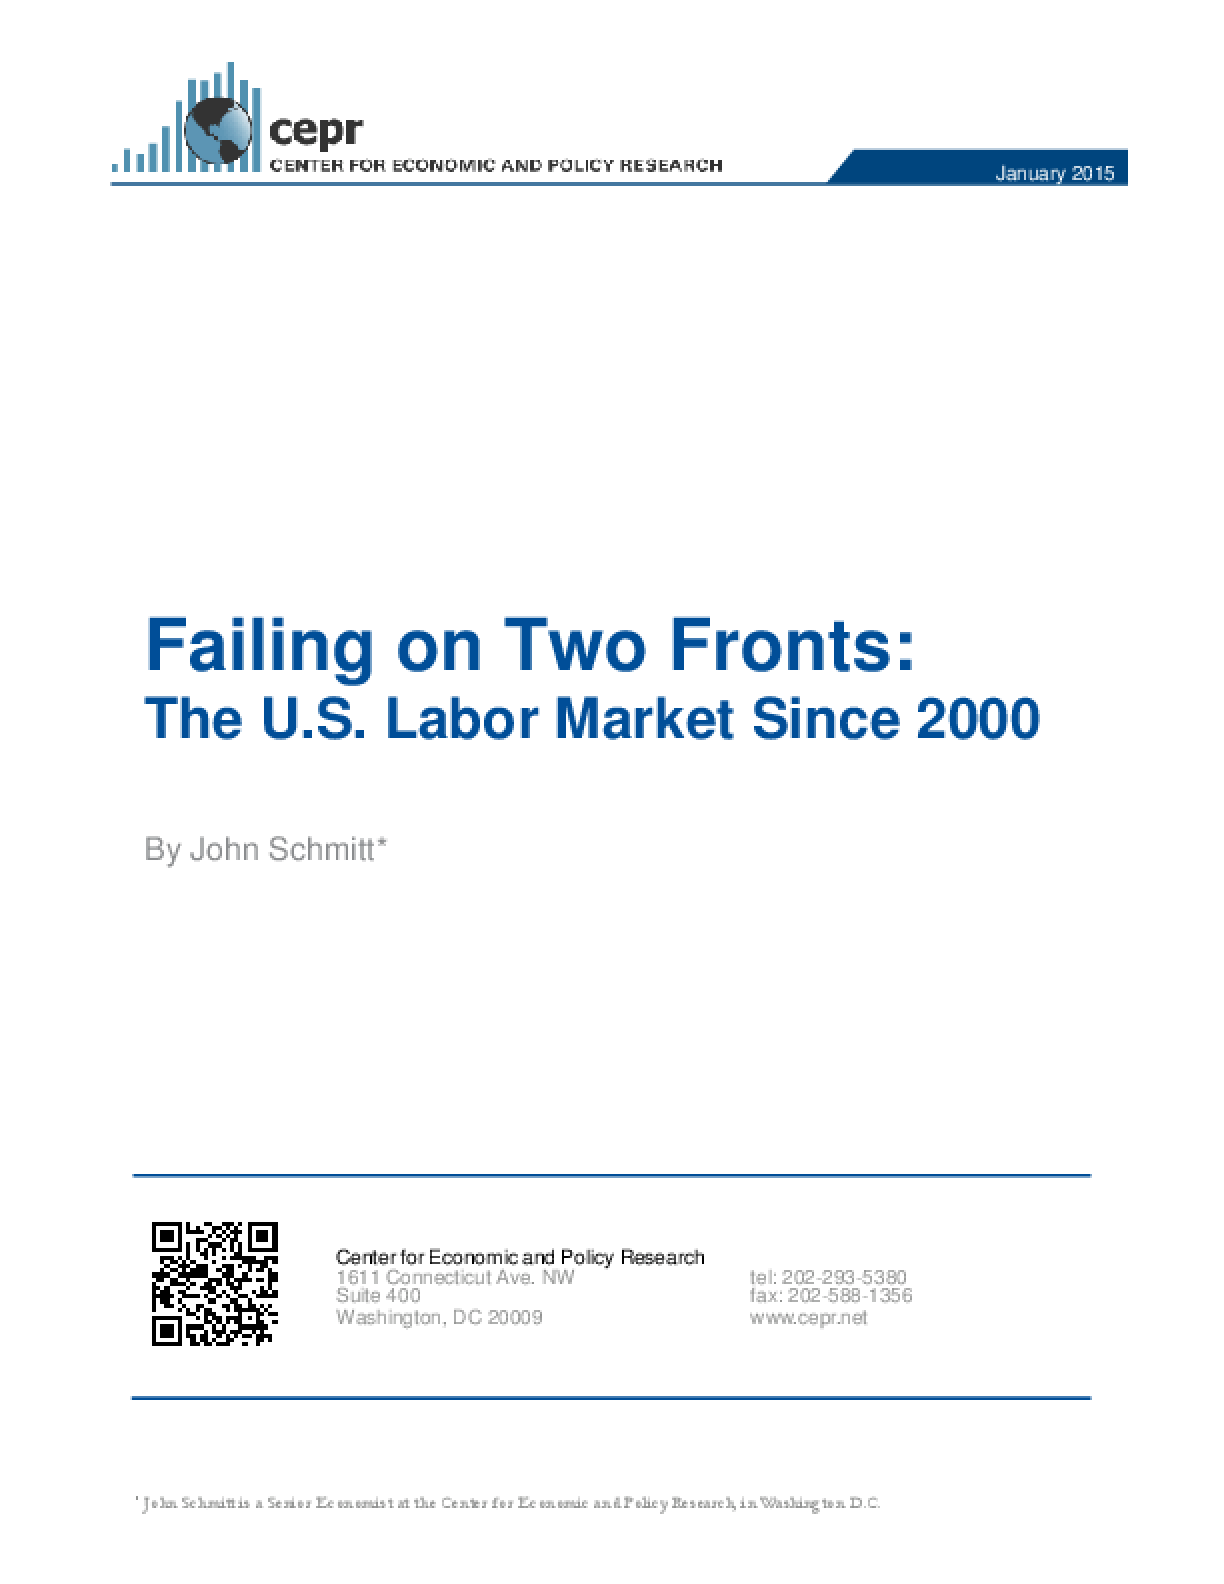 Failing on Two Fronts: The U.S. Labor Market Since 2000